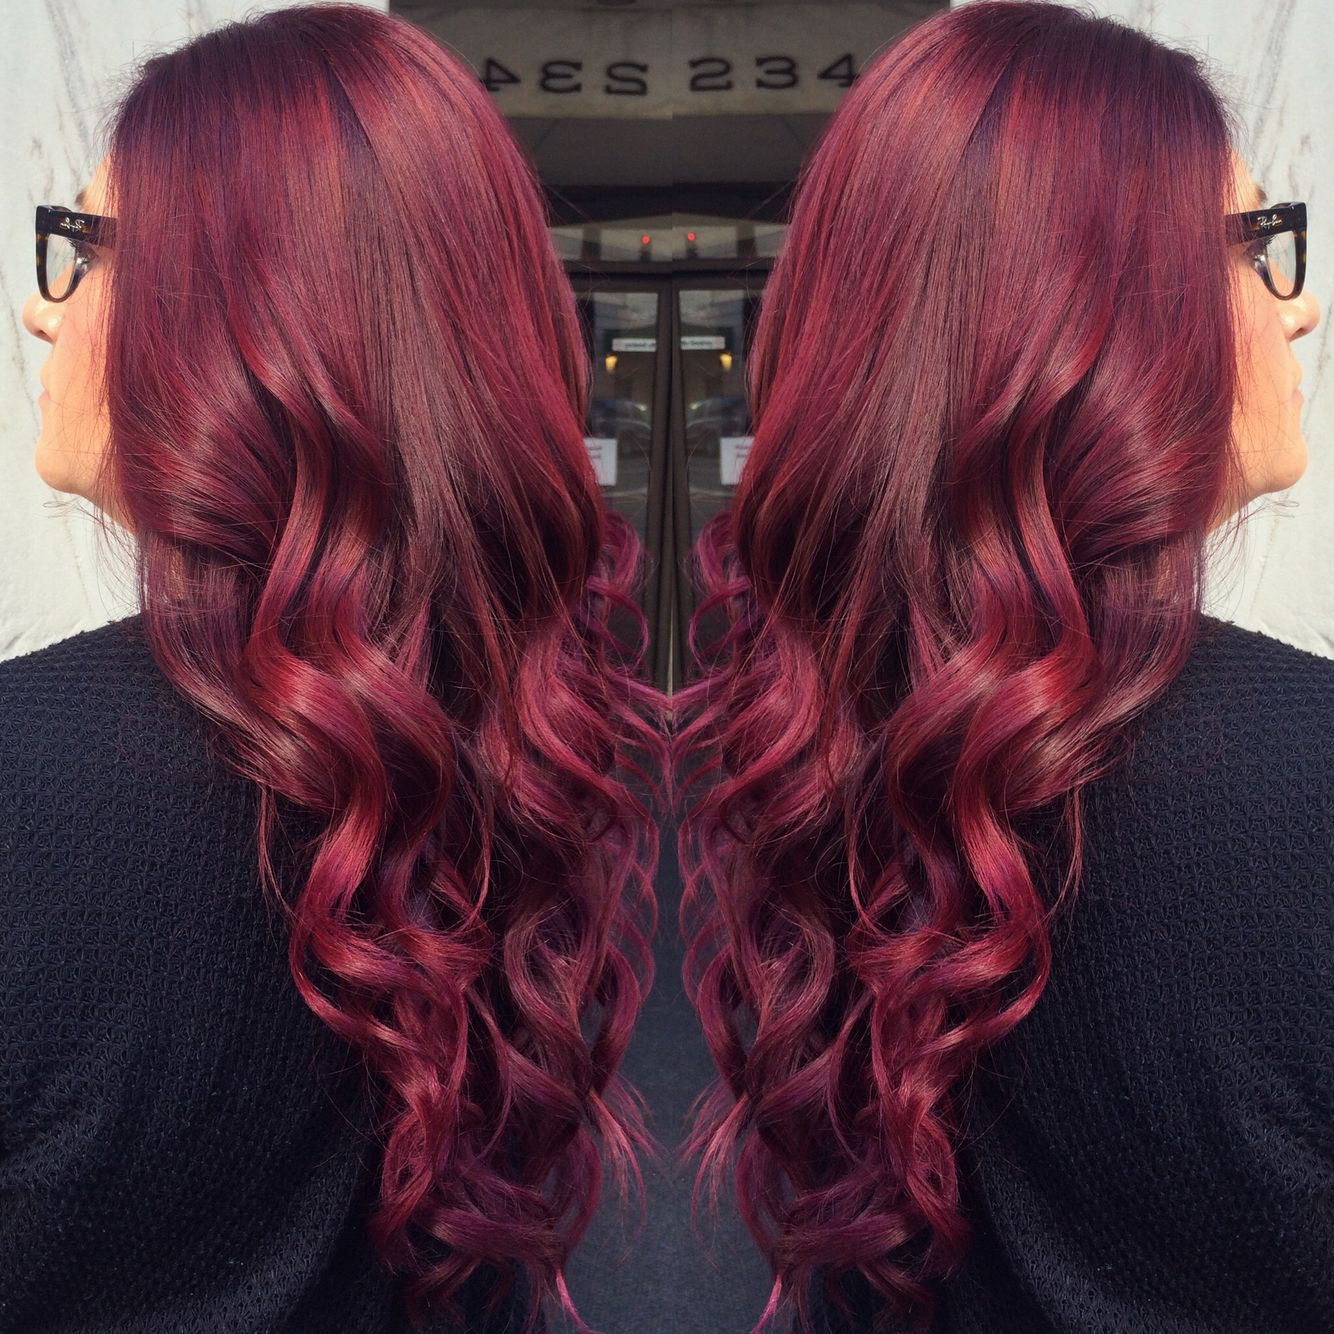 Red violet fall hair color | Hair things ️